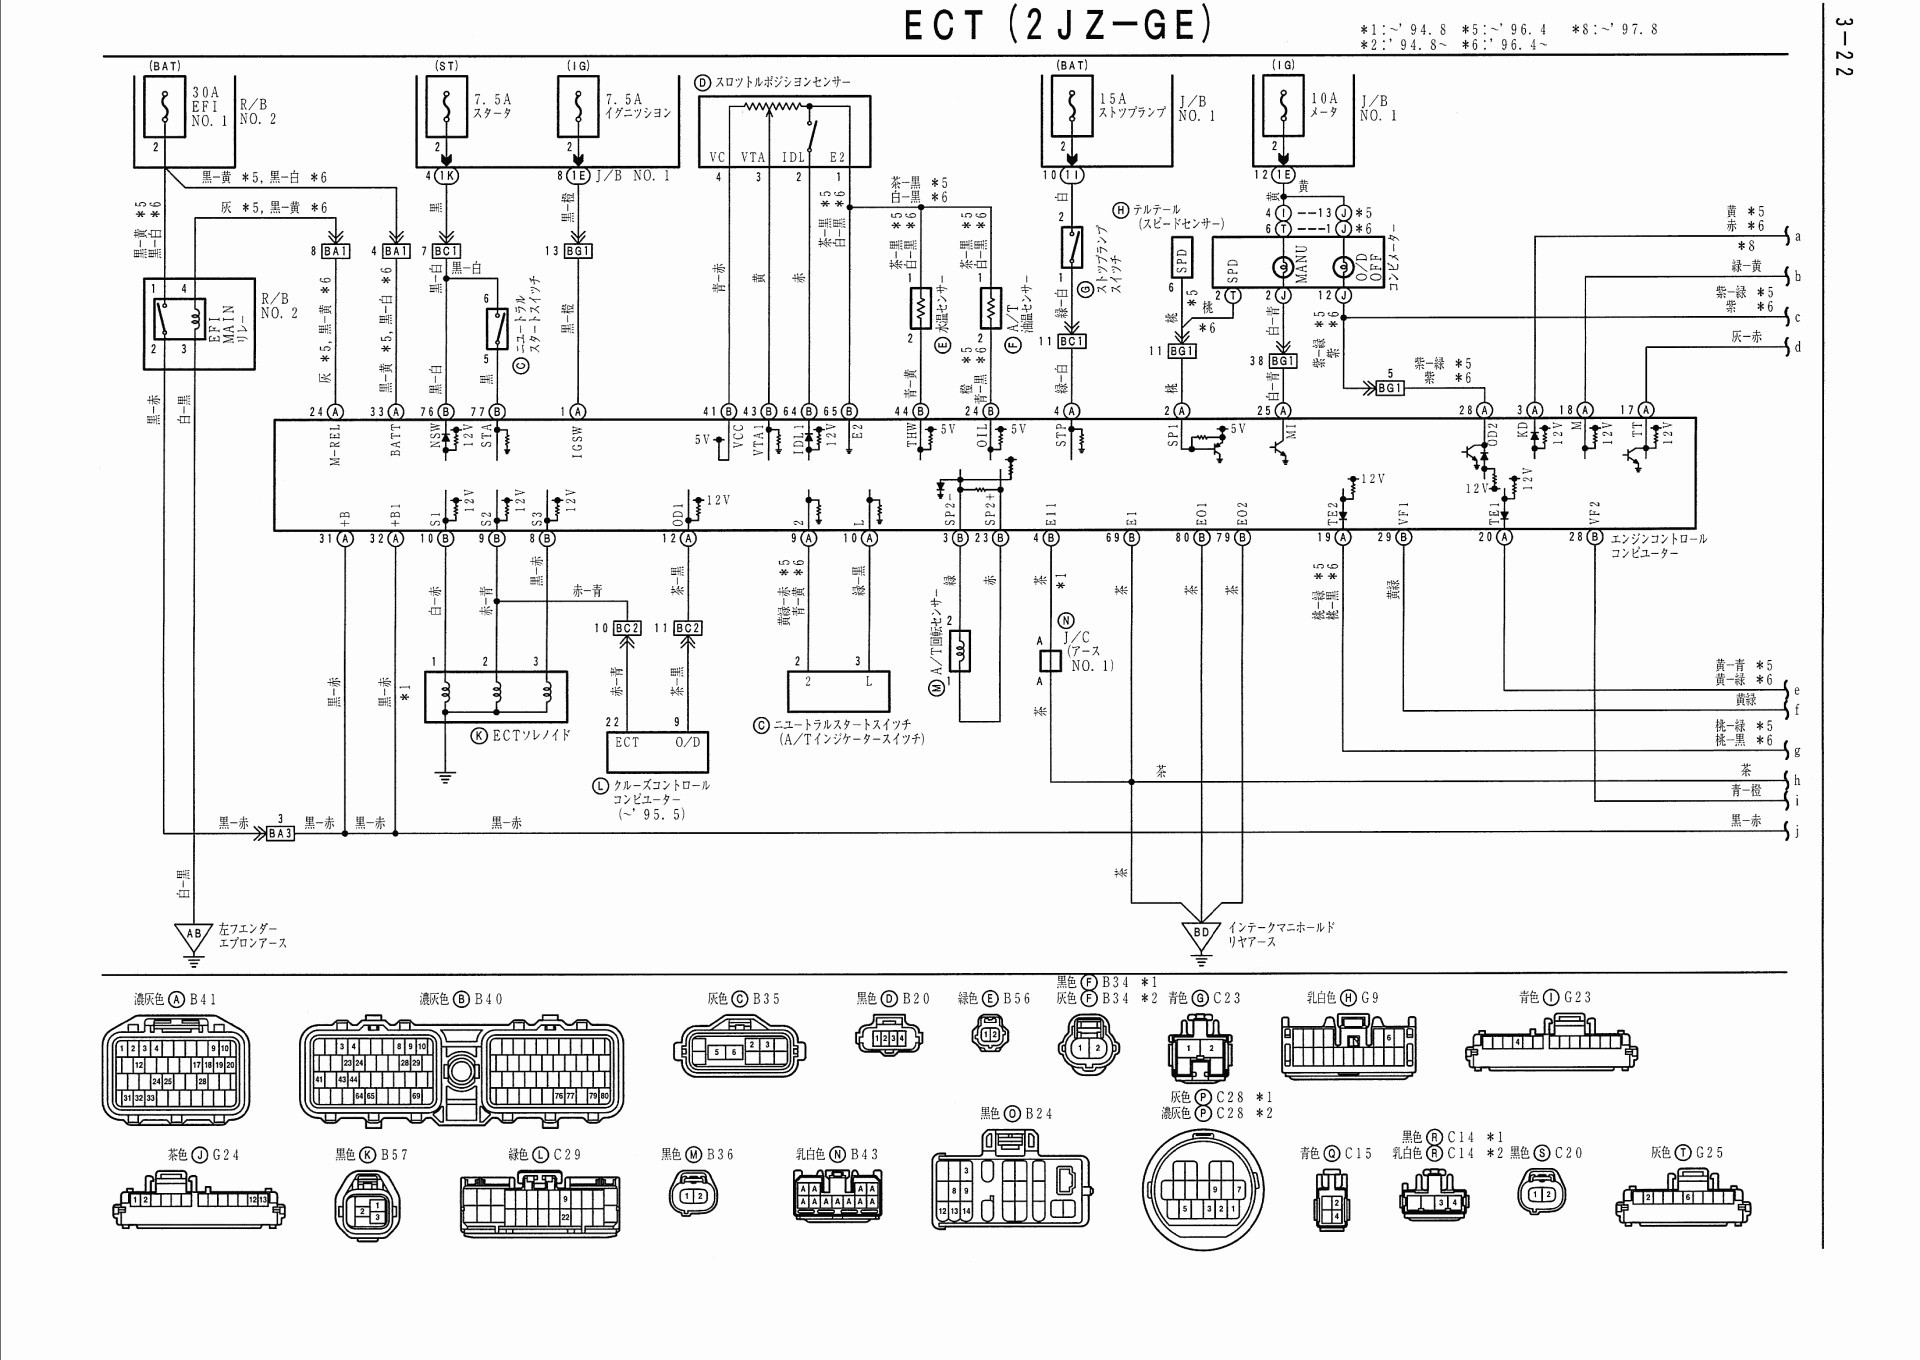 DIAGRAM] 2000 Bmw 323i Engine Wiring Diagram FULL Version HD Quality Wiring  Diagram - MC14538BCPSCHEMATIC4606.CONTOROCK.ITCONTO ROCK